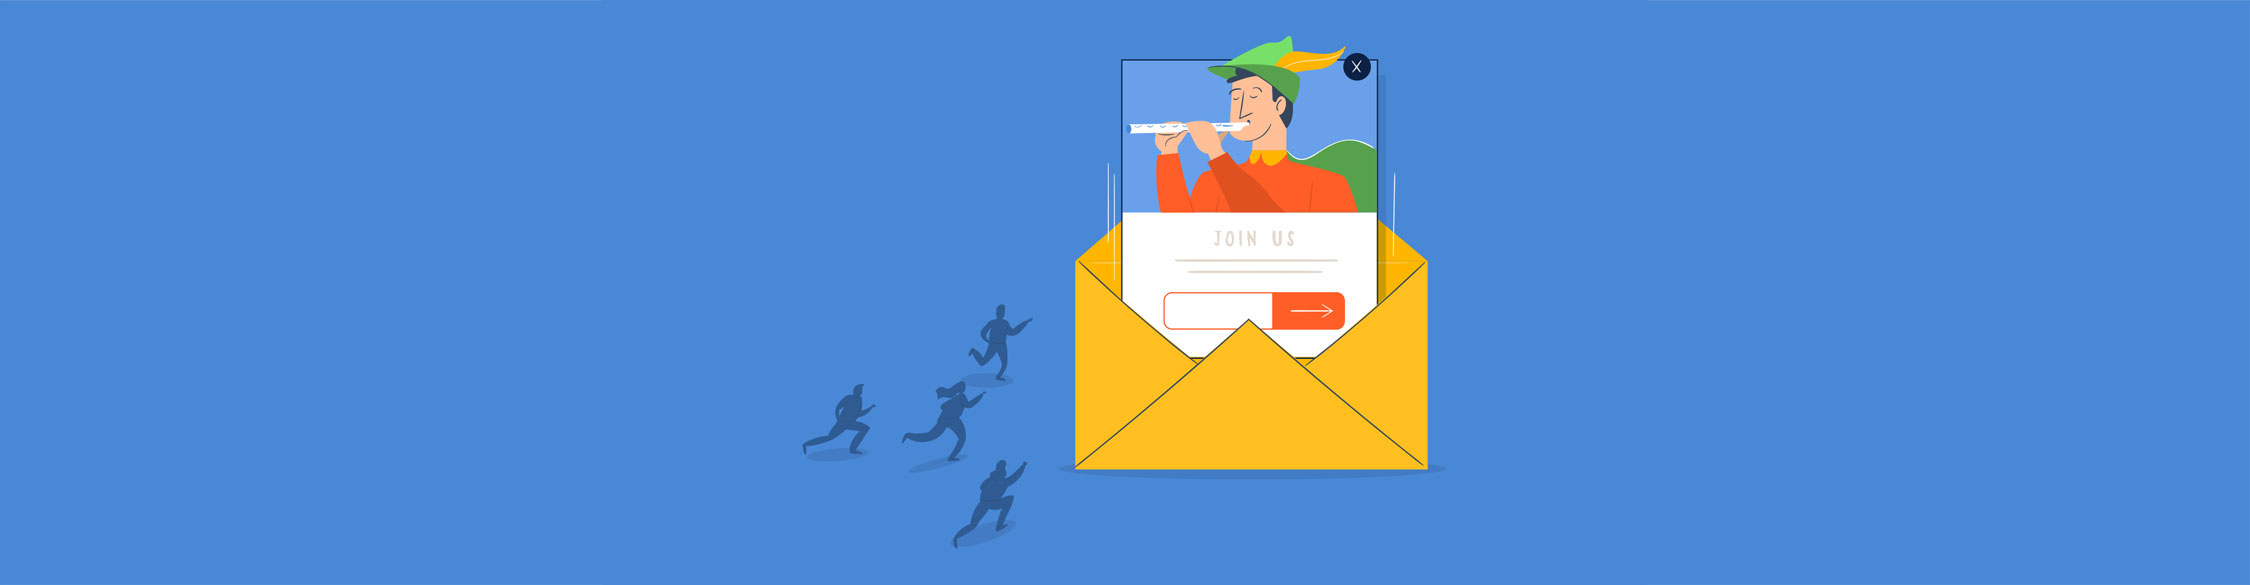 email popup - header